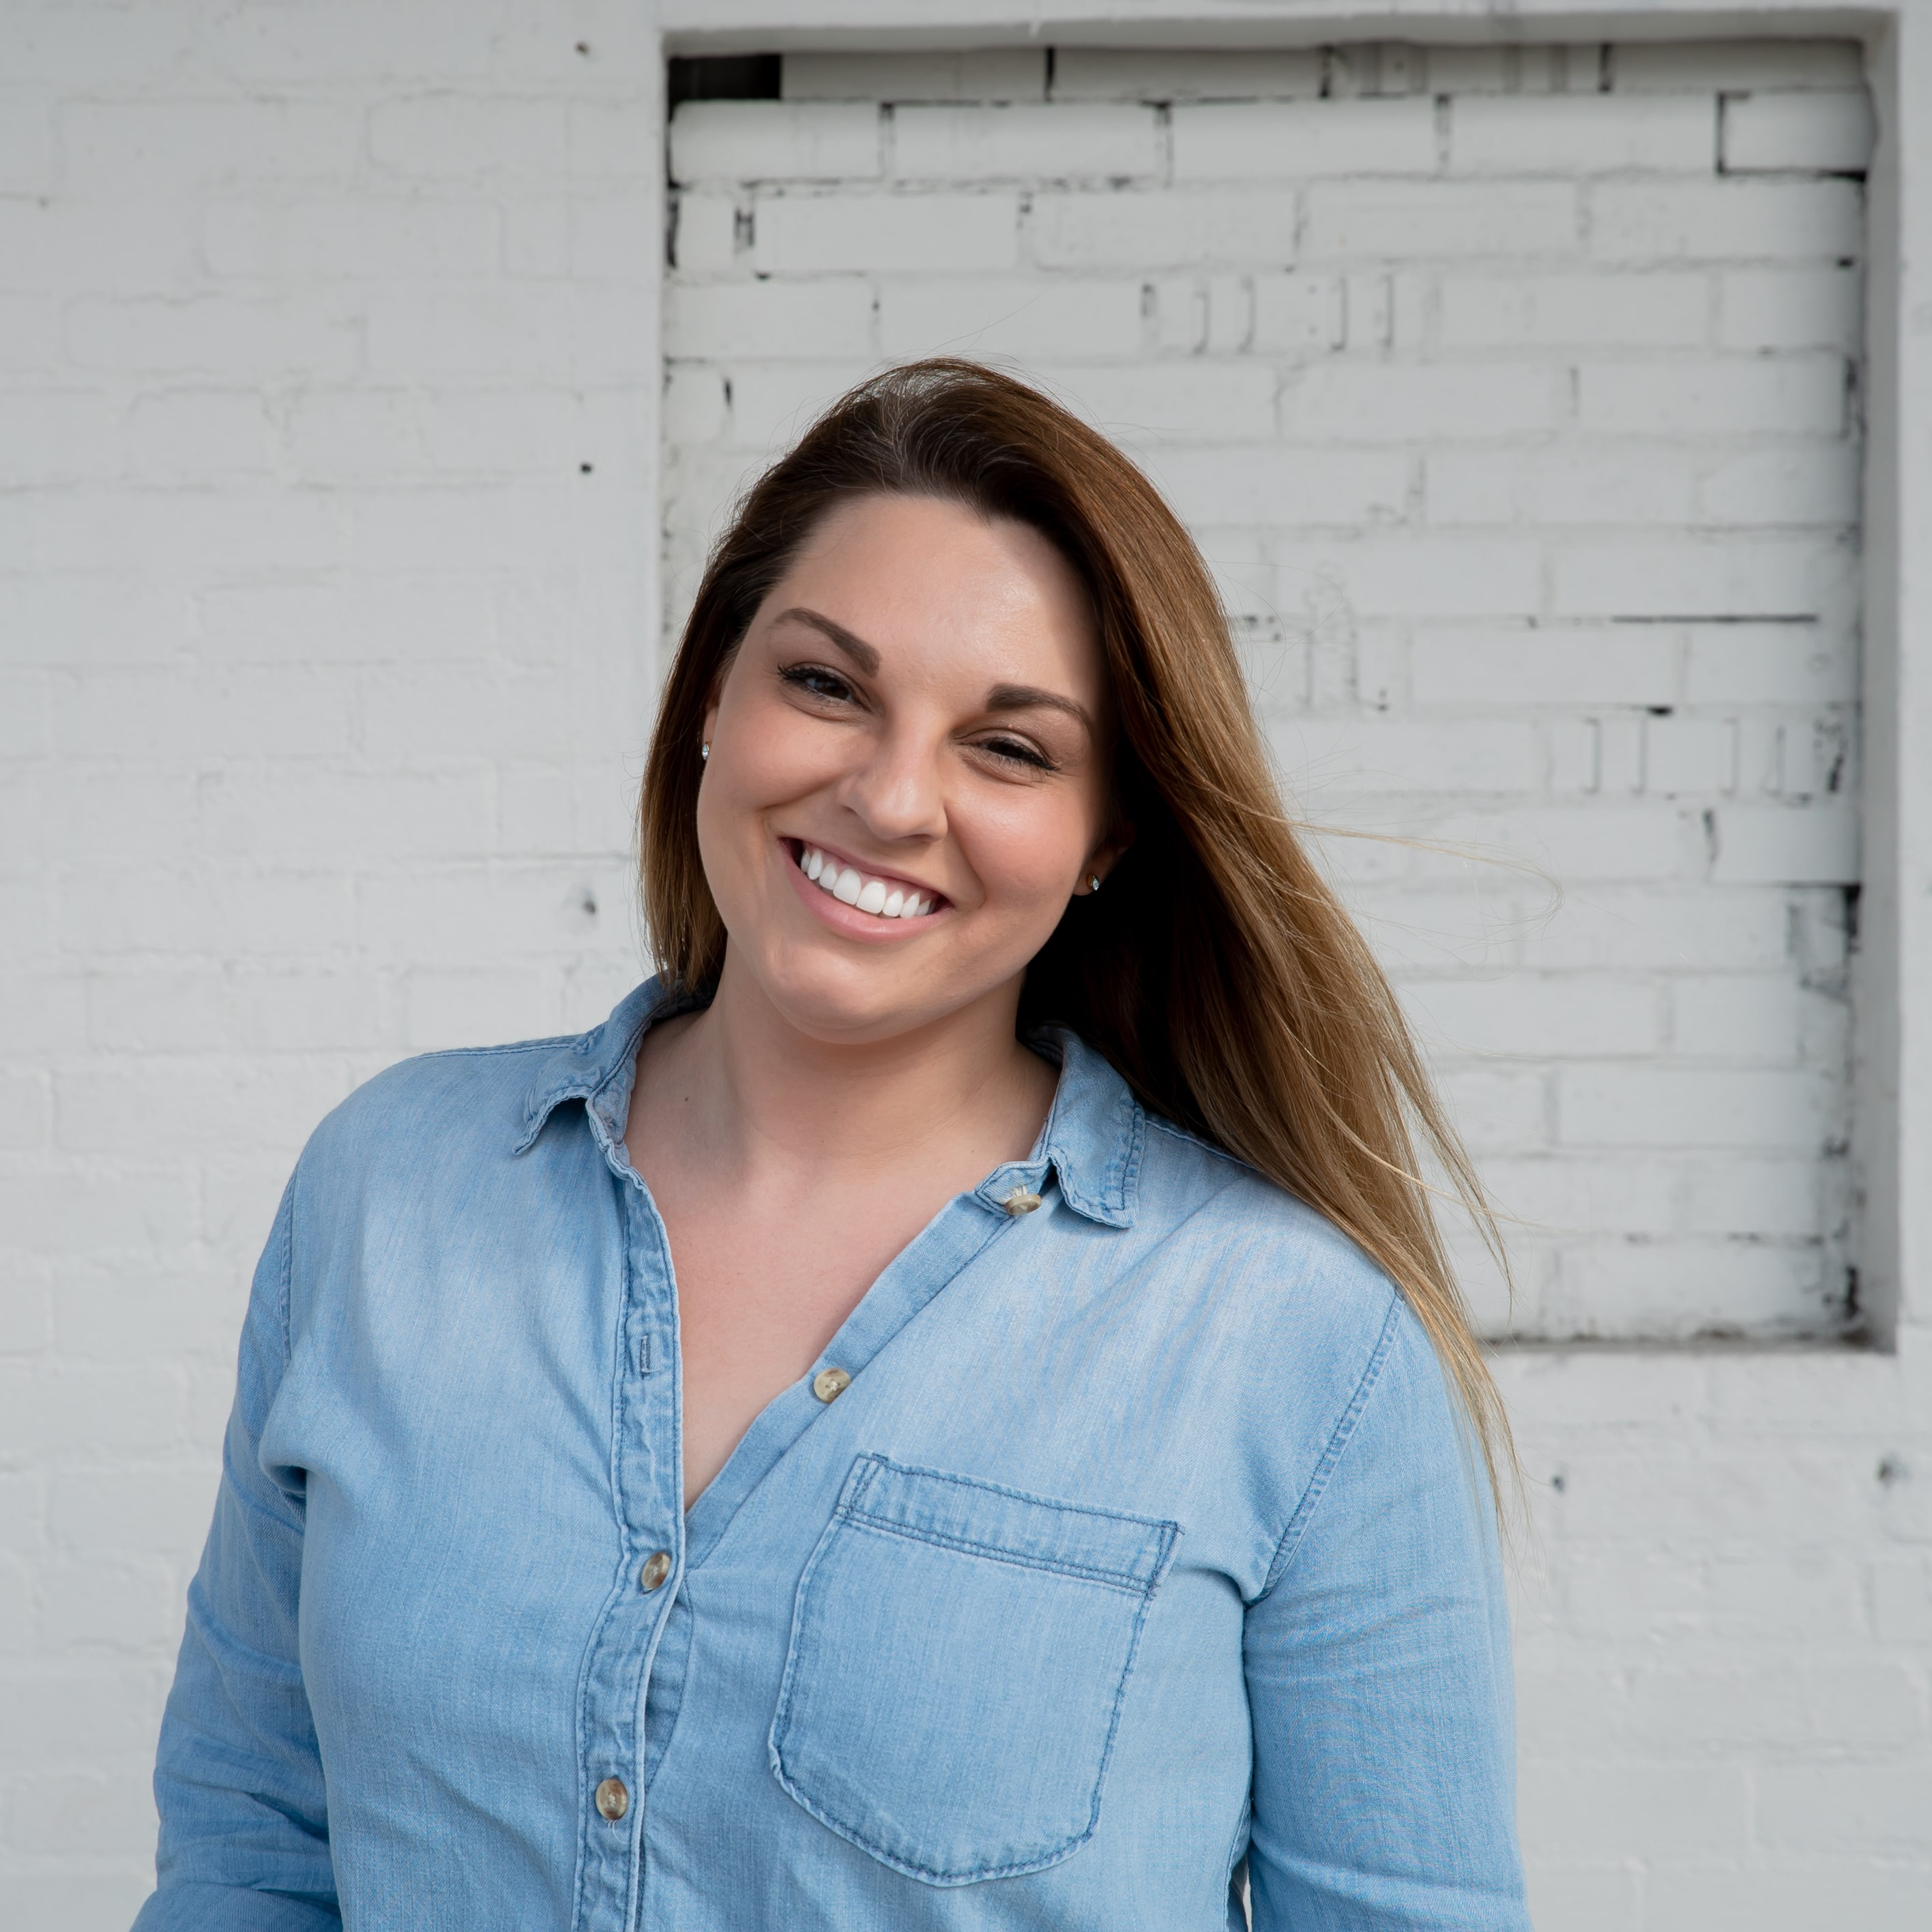 Lauren Williams, SPARK employee wearing a denim top against a white brick wall